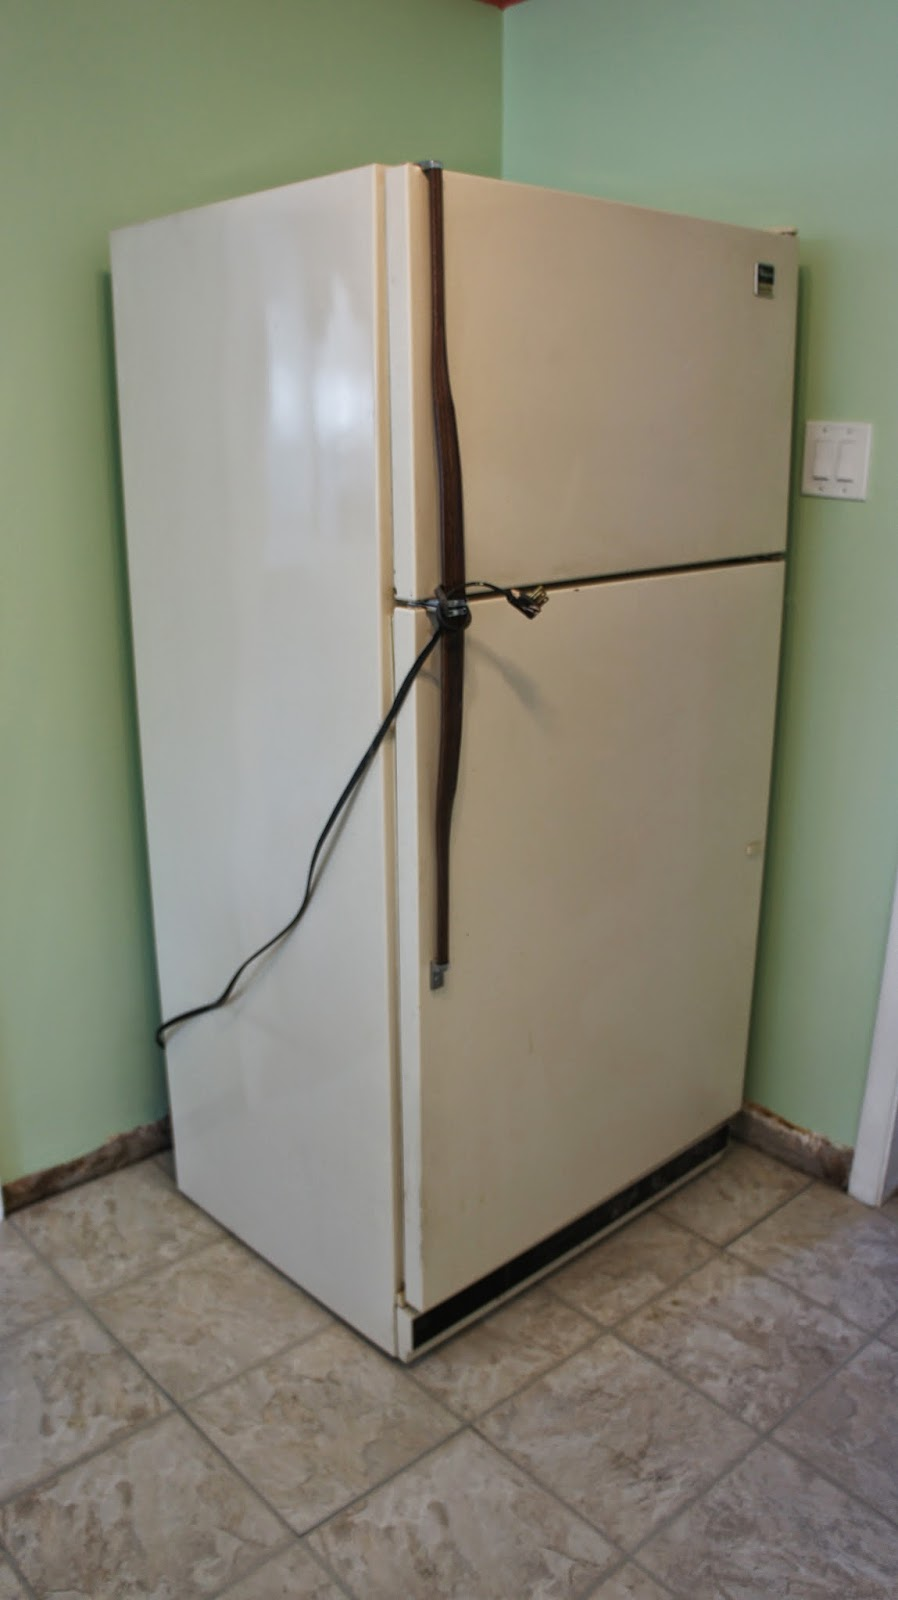 Water line hook up to fridge